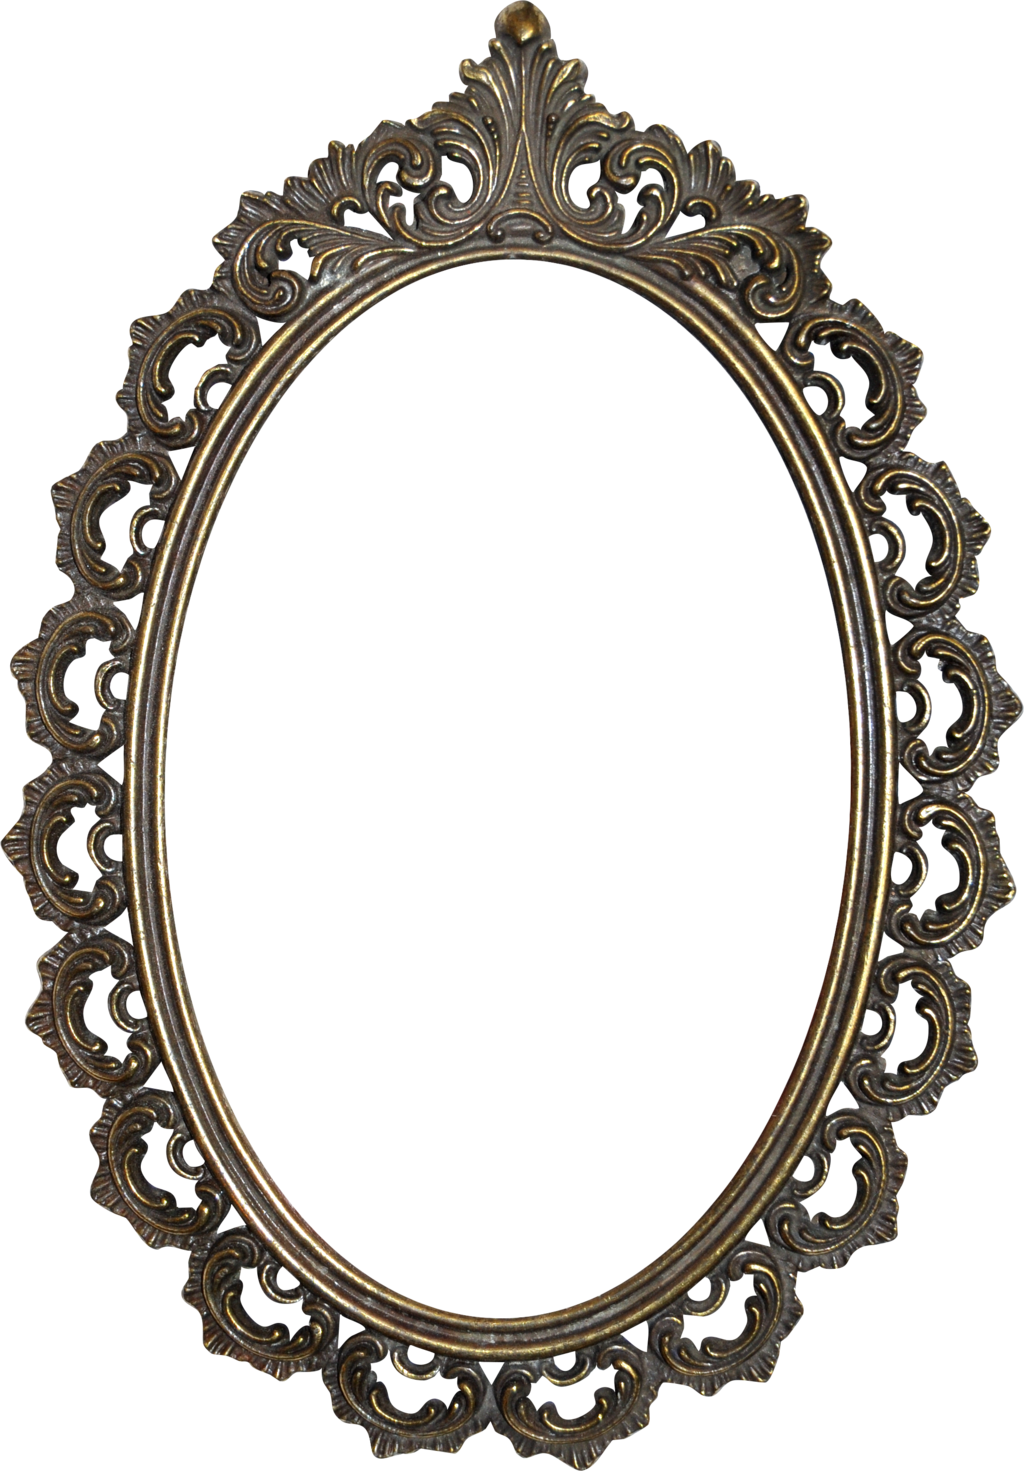 Png picture frame. Golden mirror image with